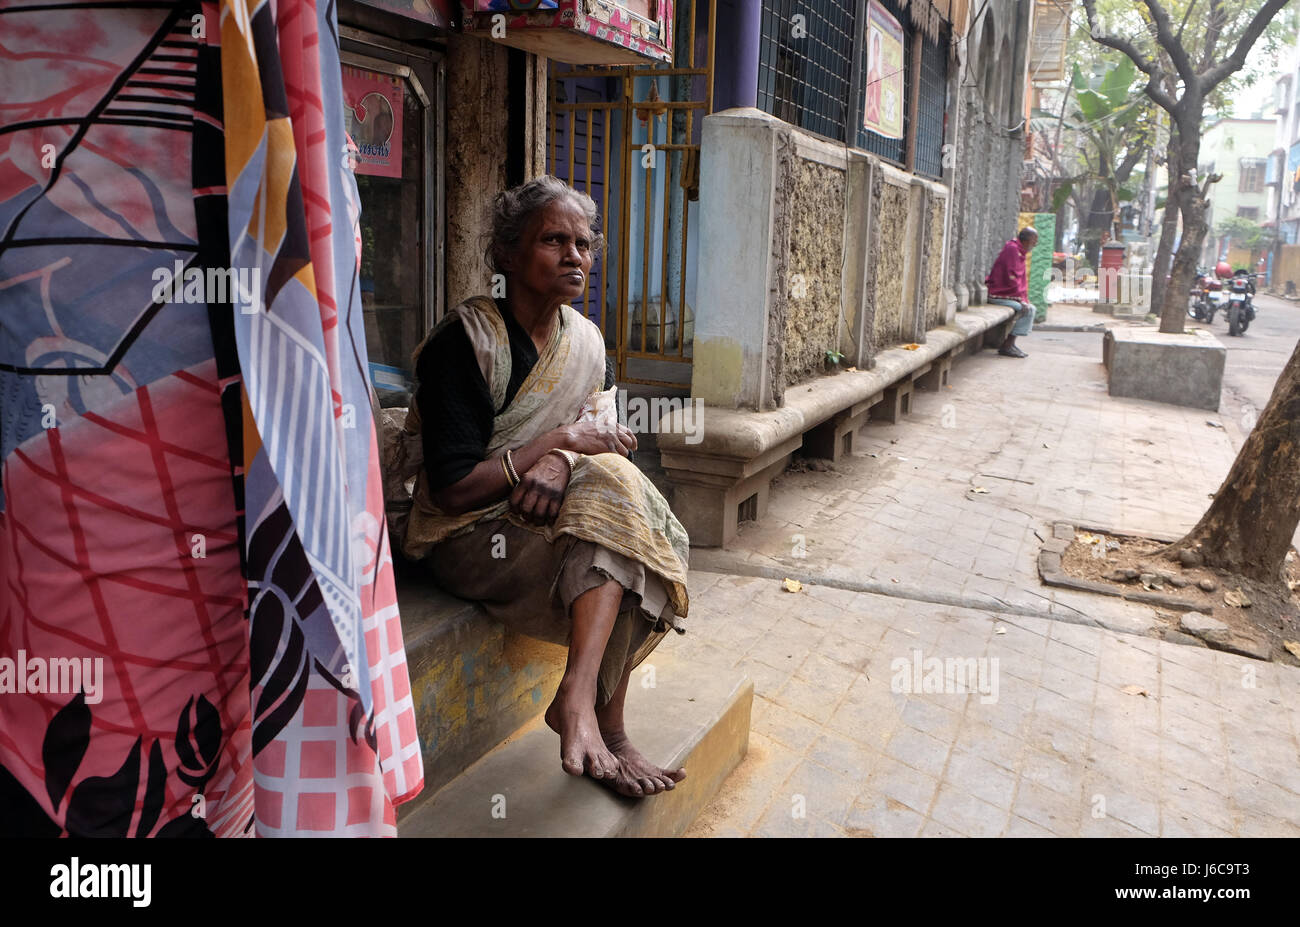 Beggars in front of Sree Sree Chanua Probhu Temple in Kolkata, West Bengal, India on February 09, 2016. - Stock Image